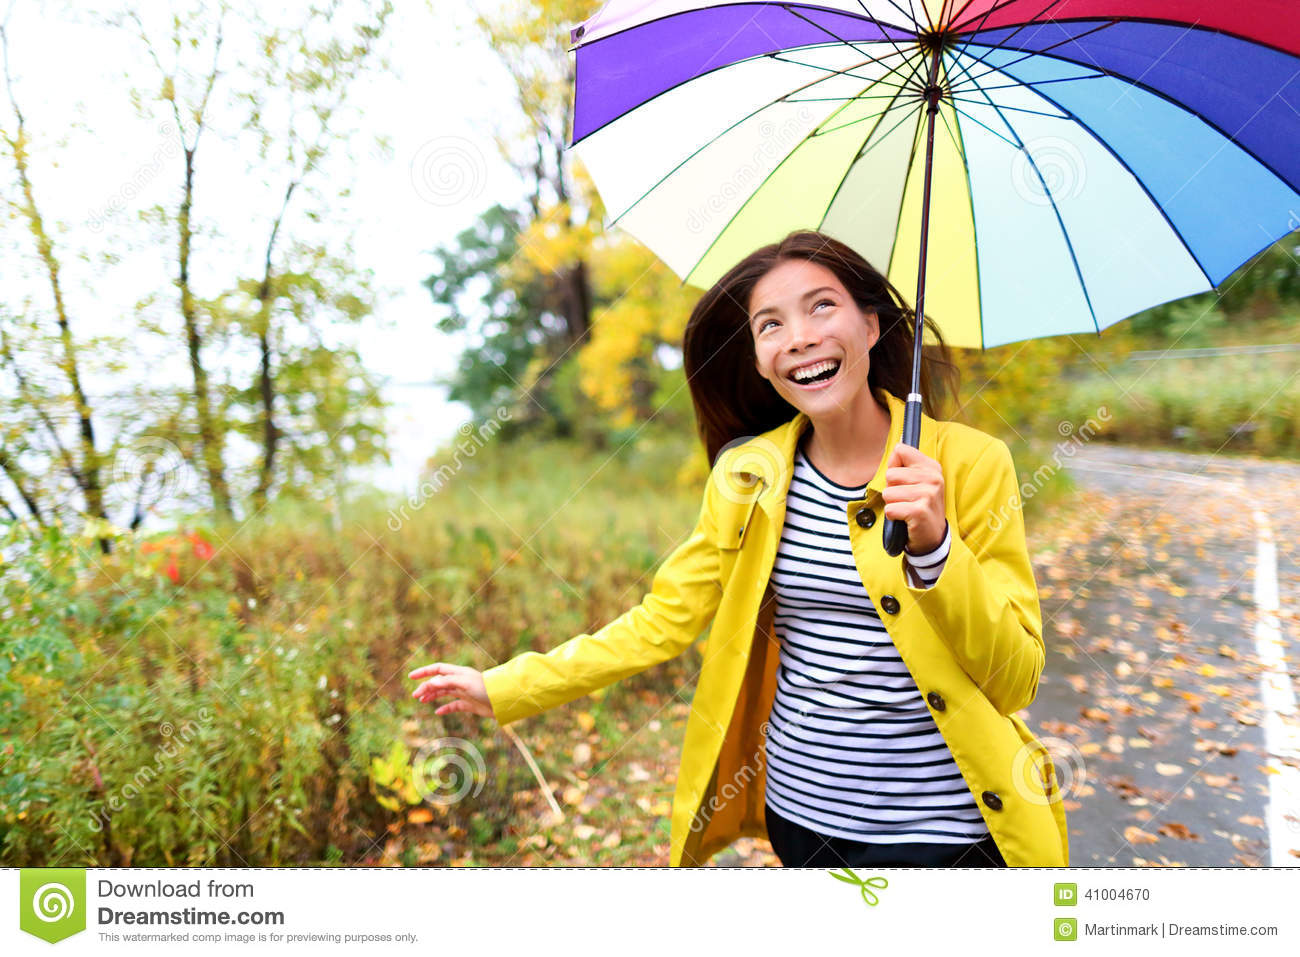 rainy fall day wearing yellow raincoat outside in nature forest by 216